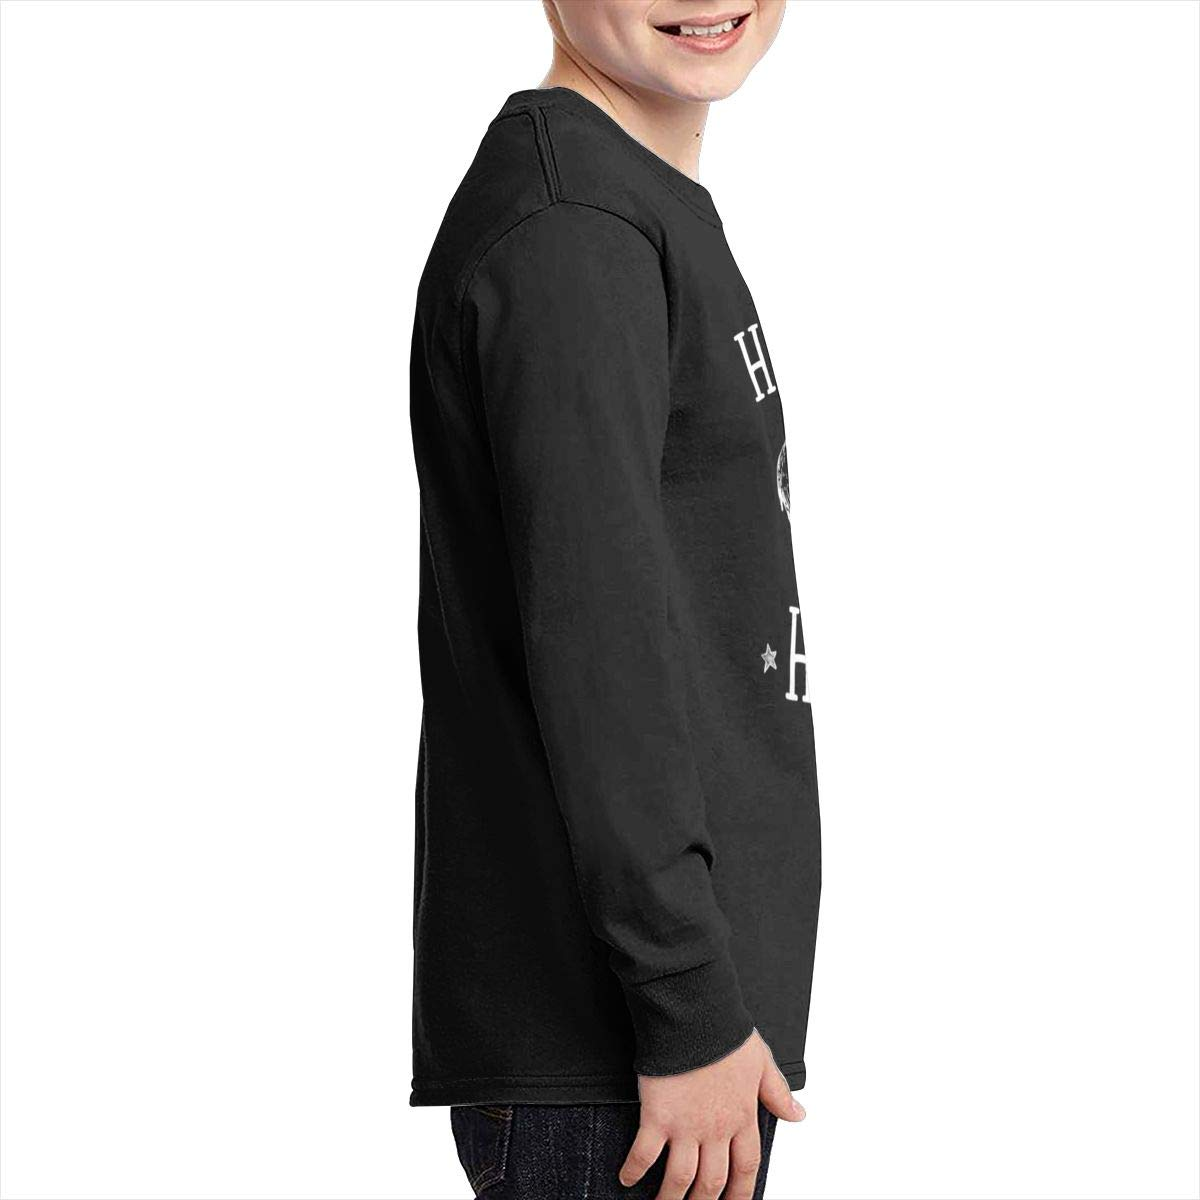 Rhfjgk Ldjg Hangry Hangry Hippo with Star Youth Boys Long Sleeve Tops Cotton